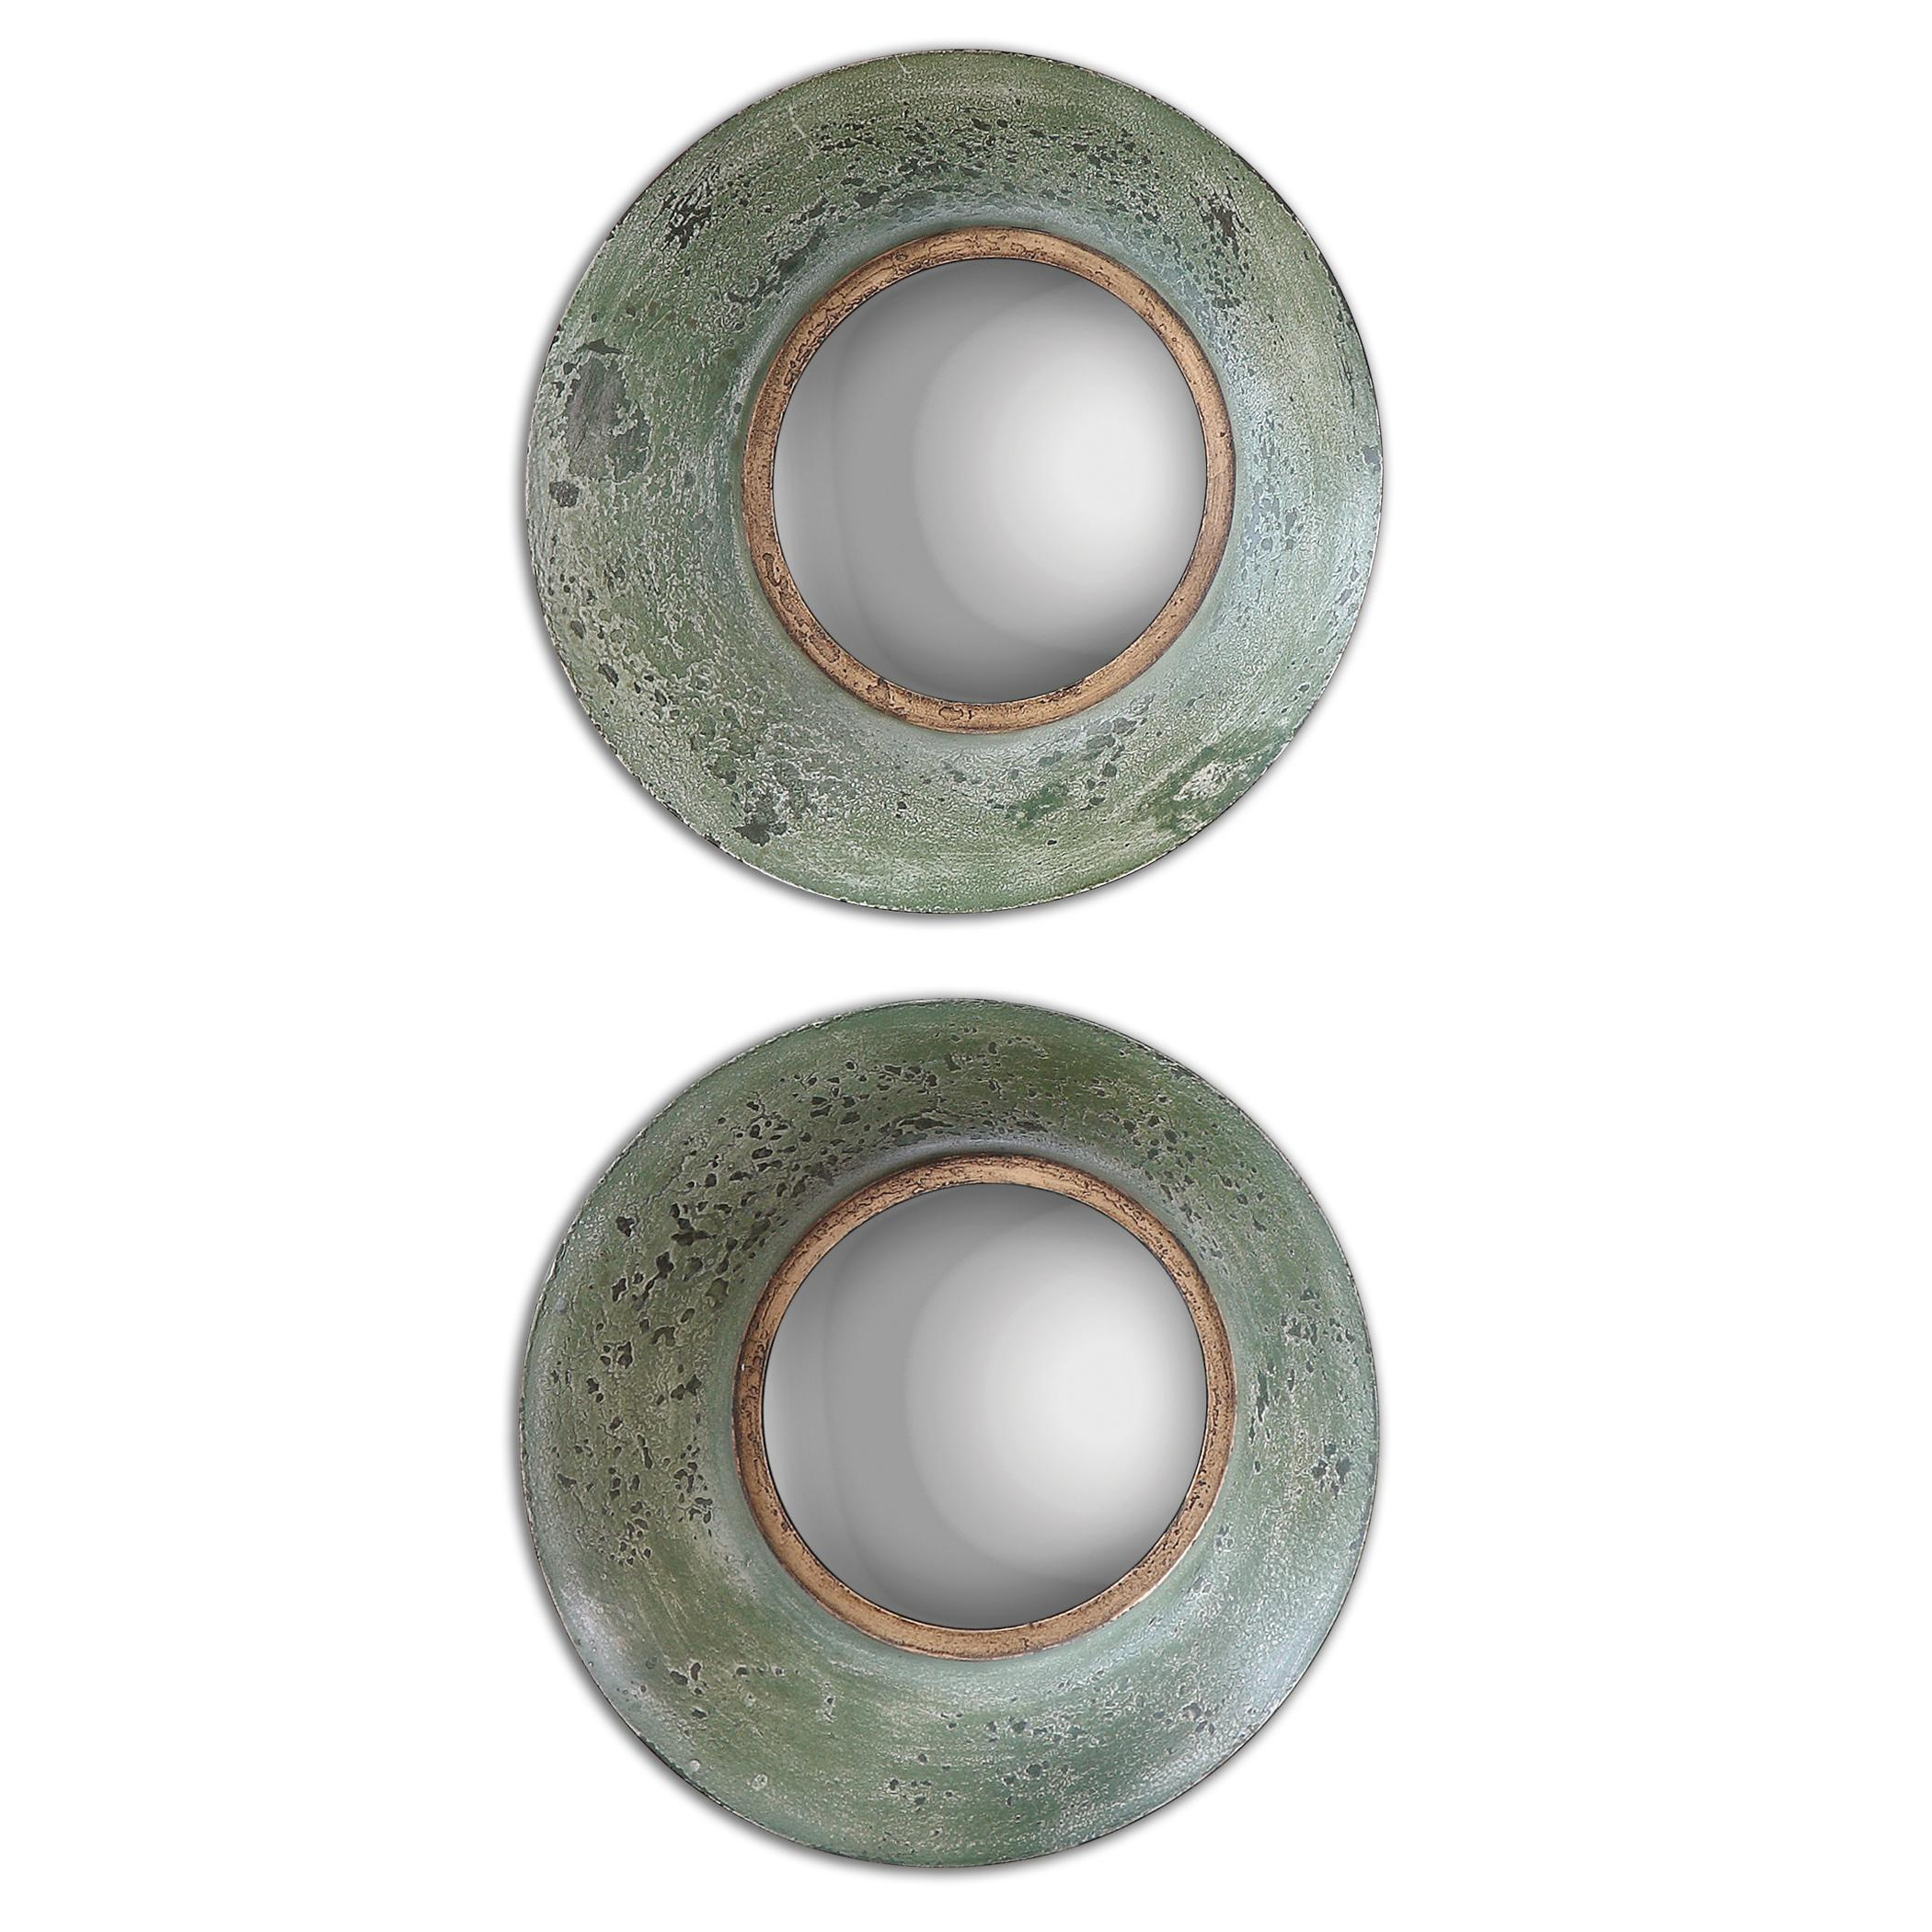 Uttermost Mirrors Forbell Aged Round Mirrors Set of 2 - Item Number: 13860